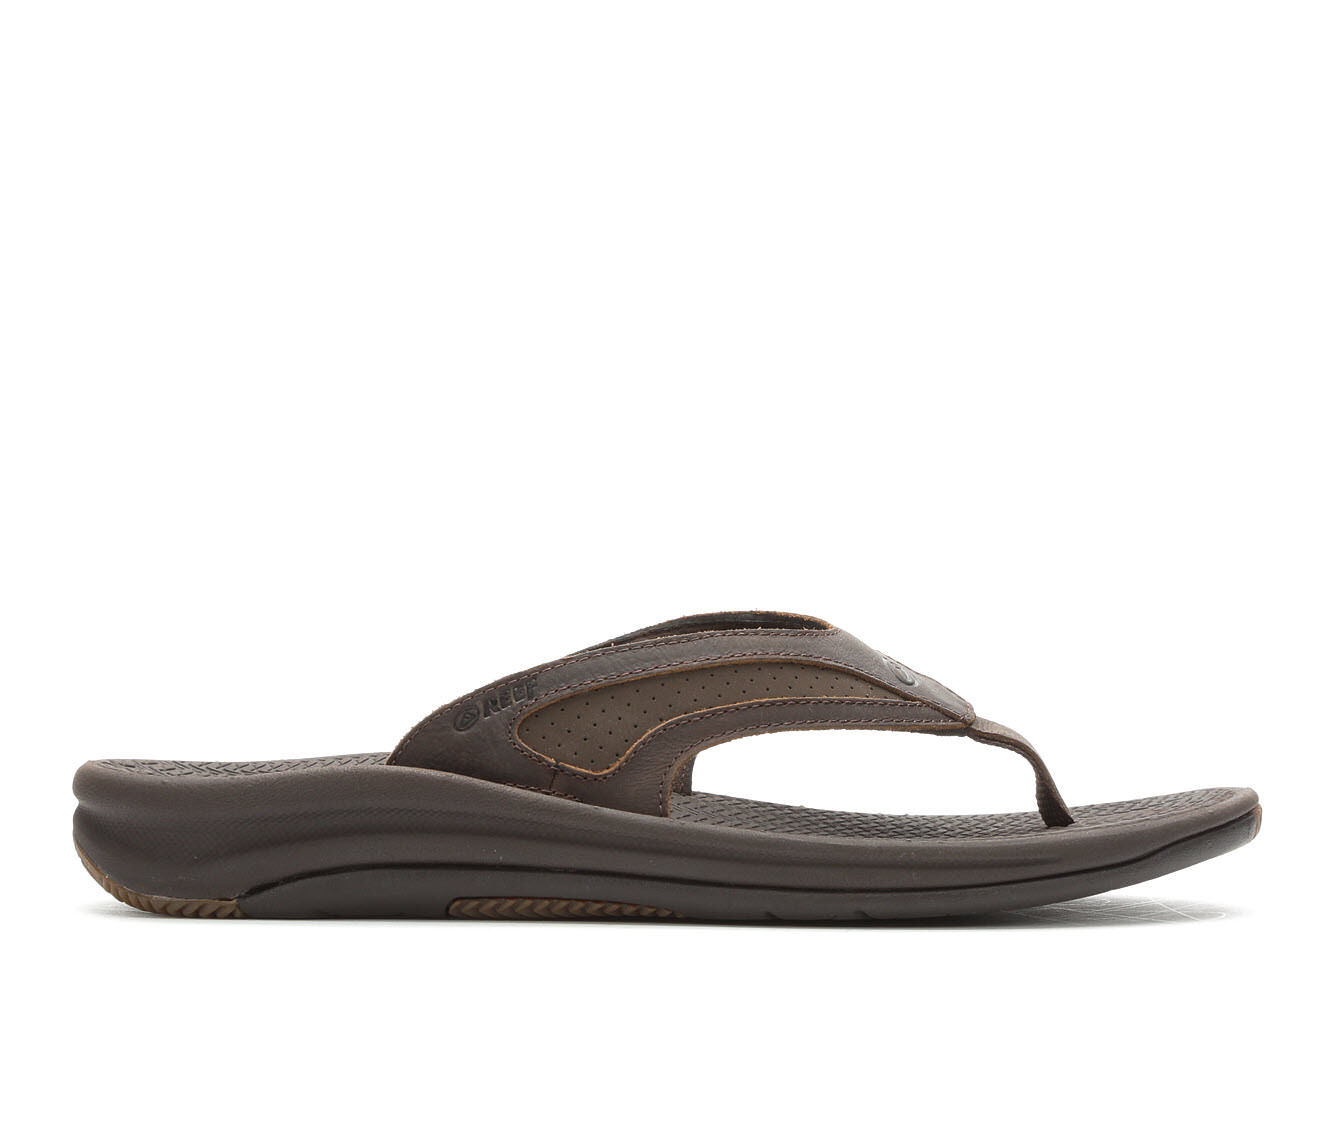 free shipping shop offer outlet online REEF Flex LE Men's Sandals ic6GUk7c